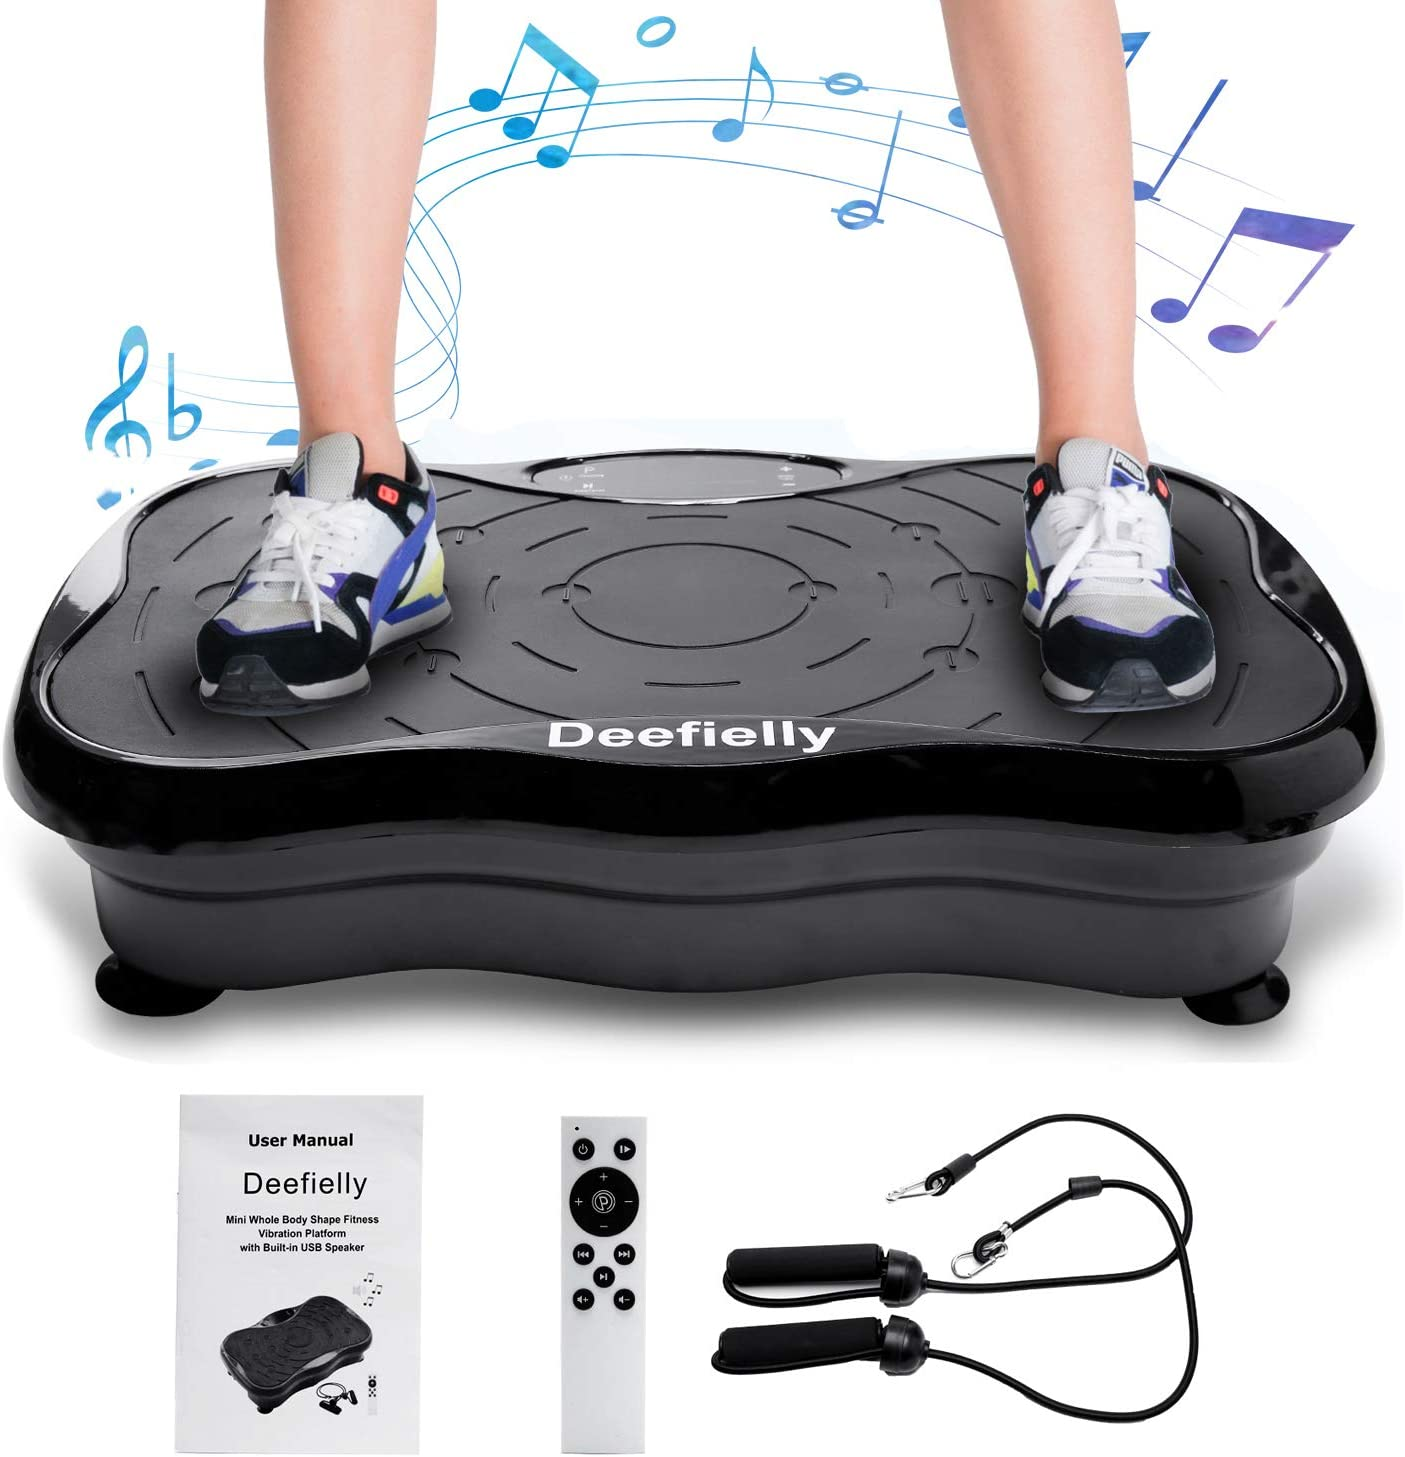 Remote Control and Max Load 330lbs Ravs Vibration Plate Exercise Machine Whole Body Workout Machine Vibration Fitness Platform Machine Home Training Equipment with Resistance Bands